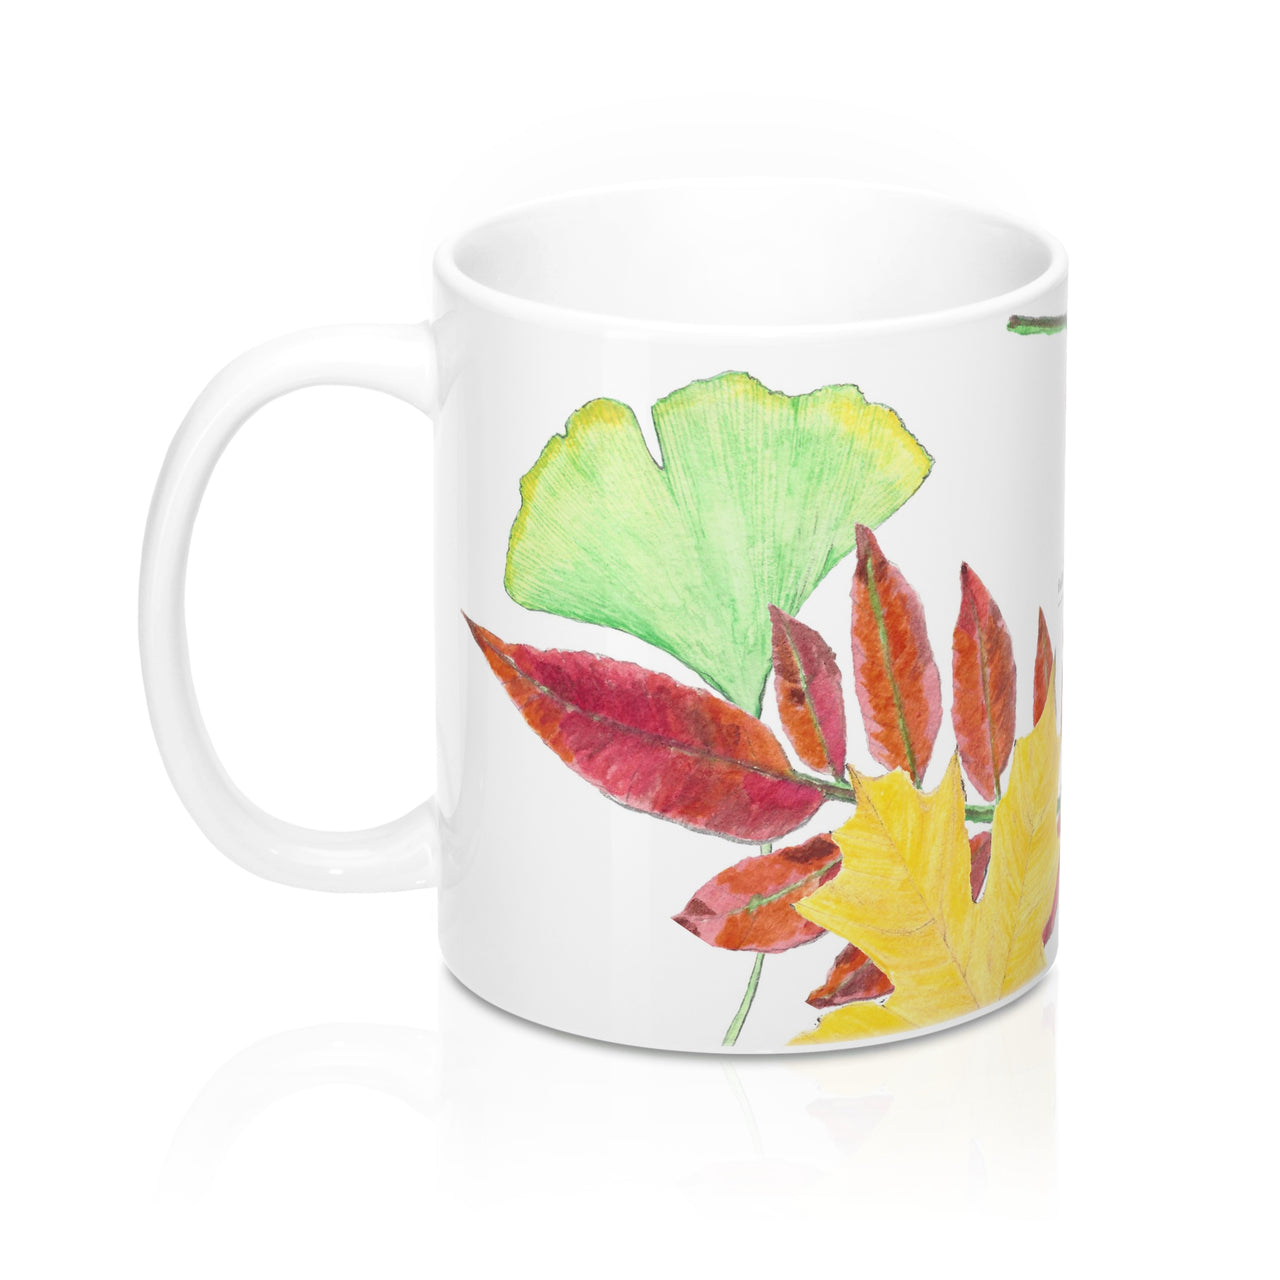 Coffee Mug - Three Fall Leaves - Falling Leaf Card Co.